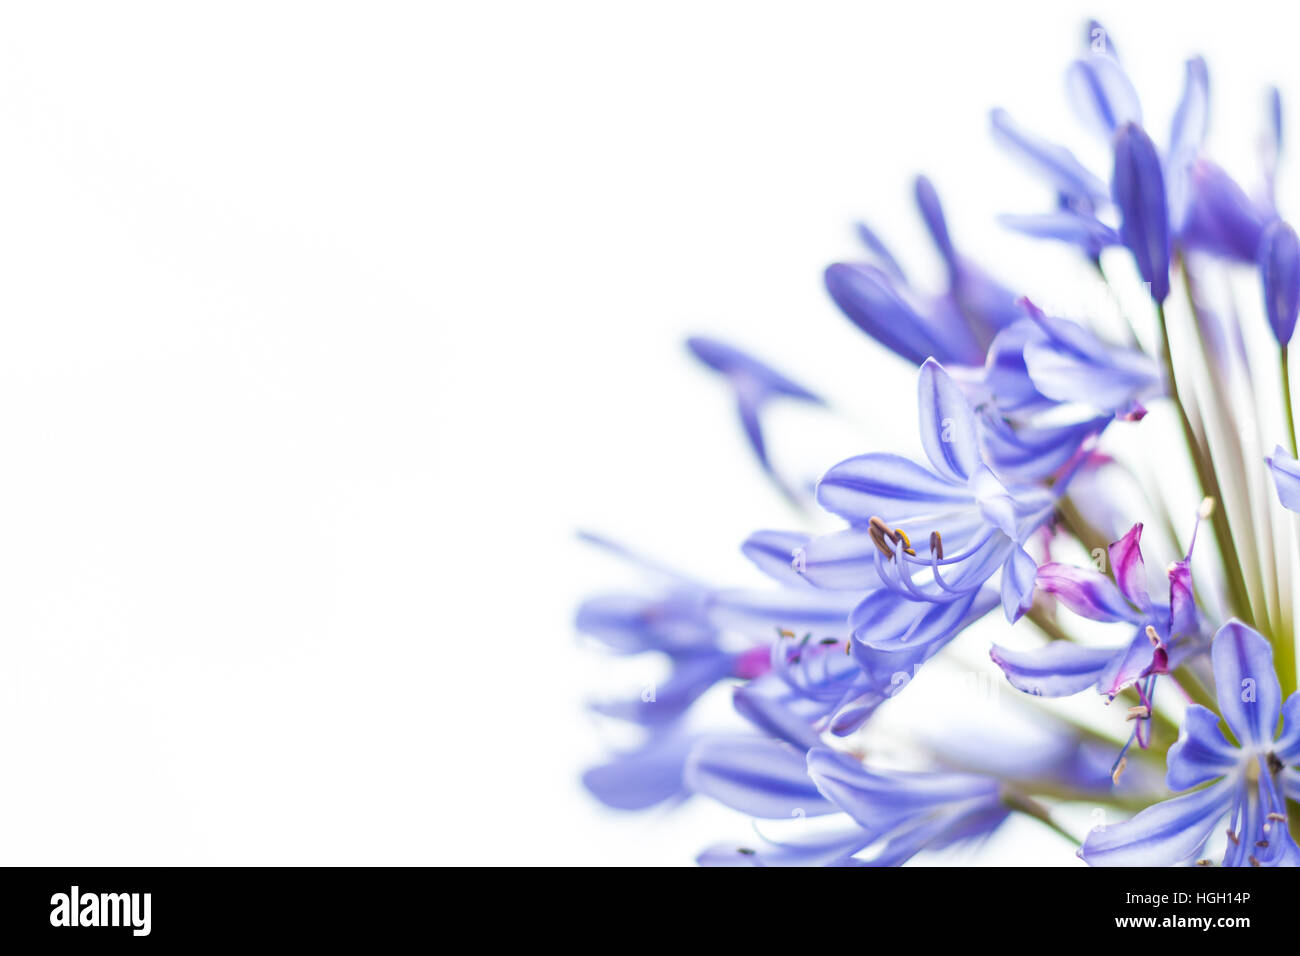 Blue Agapanthus Agapanthus praecox, a close up of the individual flowers, Tresco, Isles of Scilly, July - Stock Image